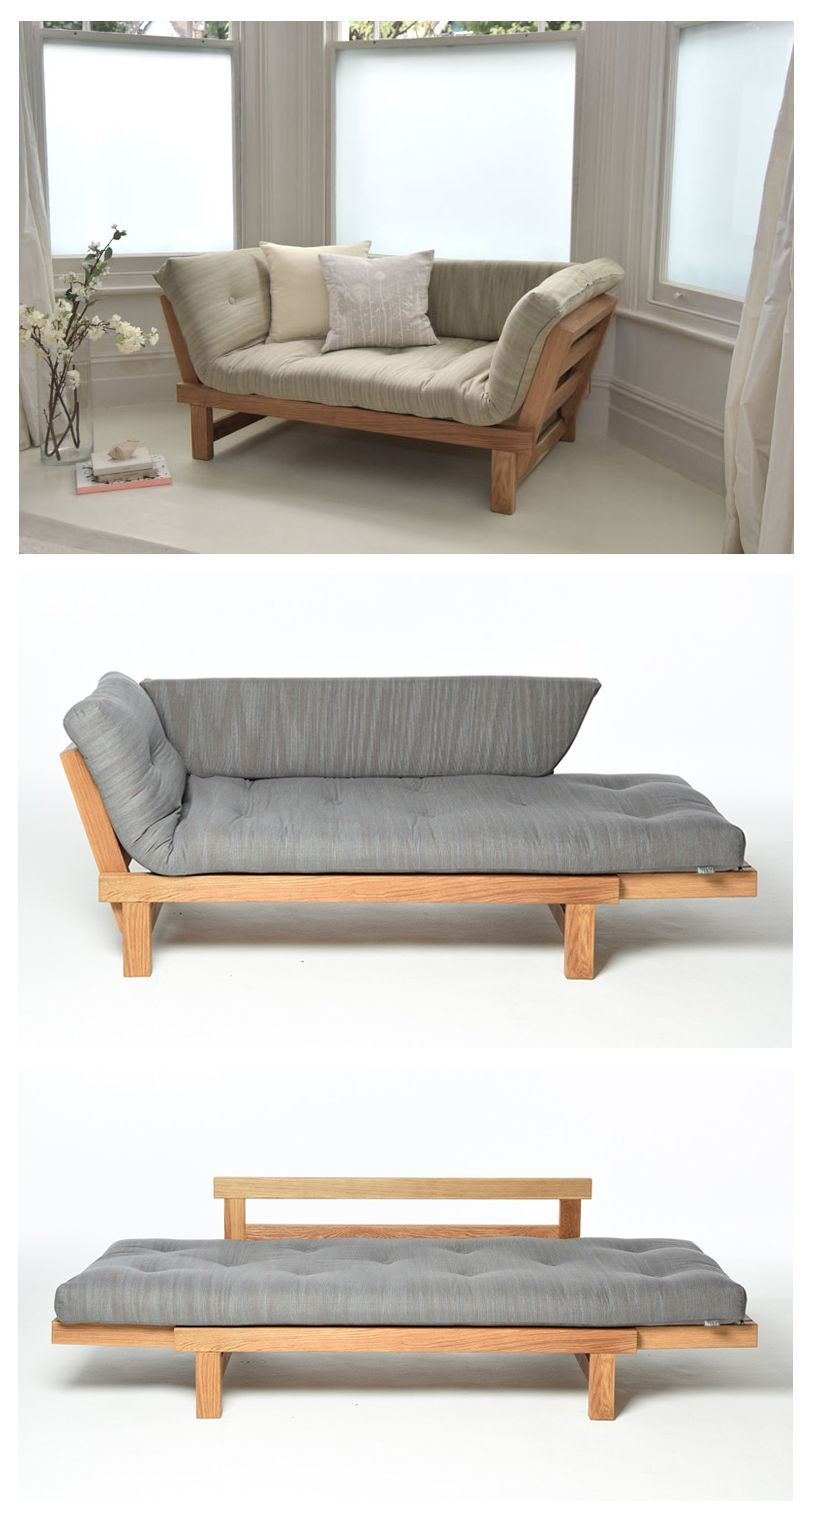 Sofa Bed Arredamento.Oak Switch Sofa Bed Arredo Di Interni E Design